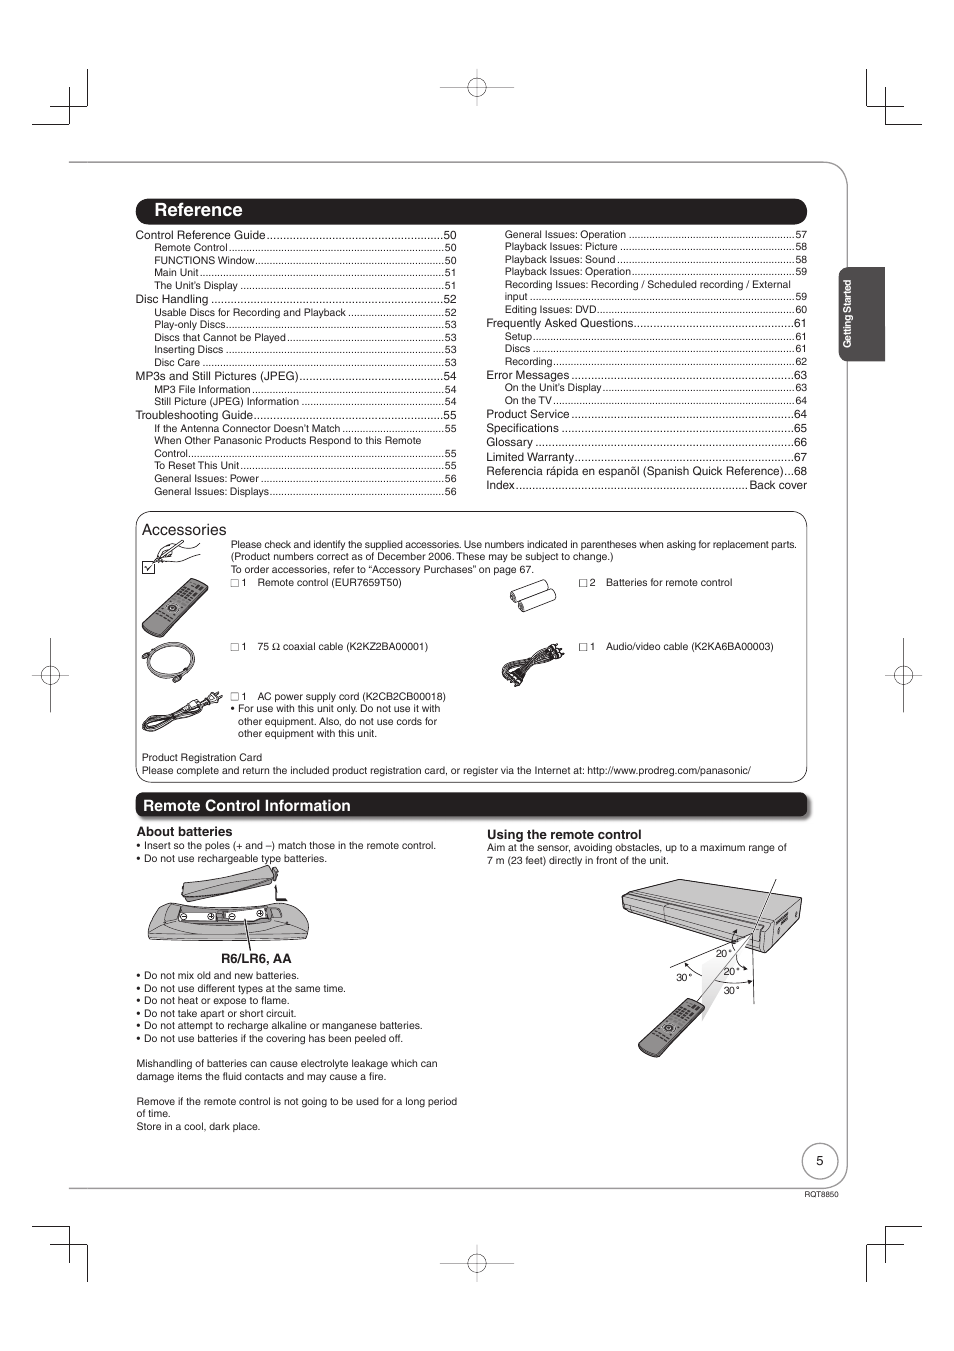 Accessories, Remote control information, Reference